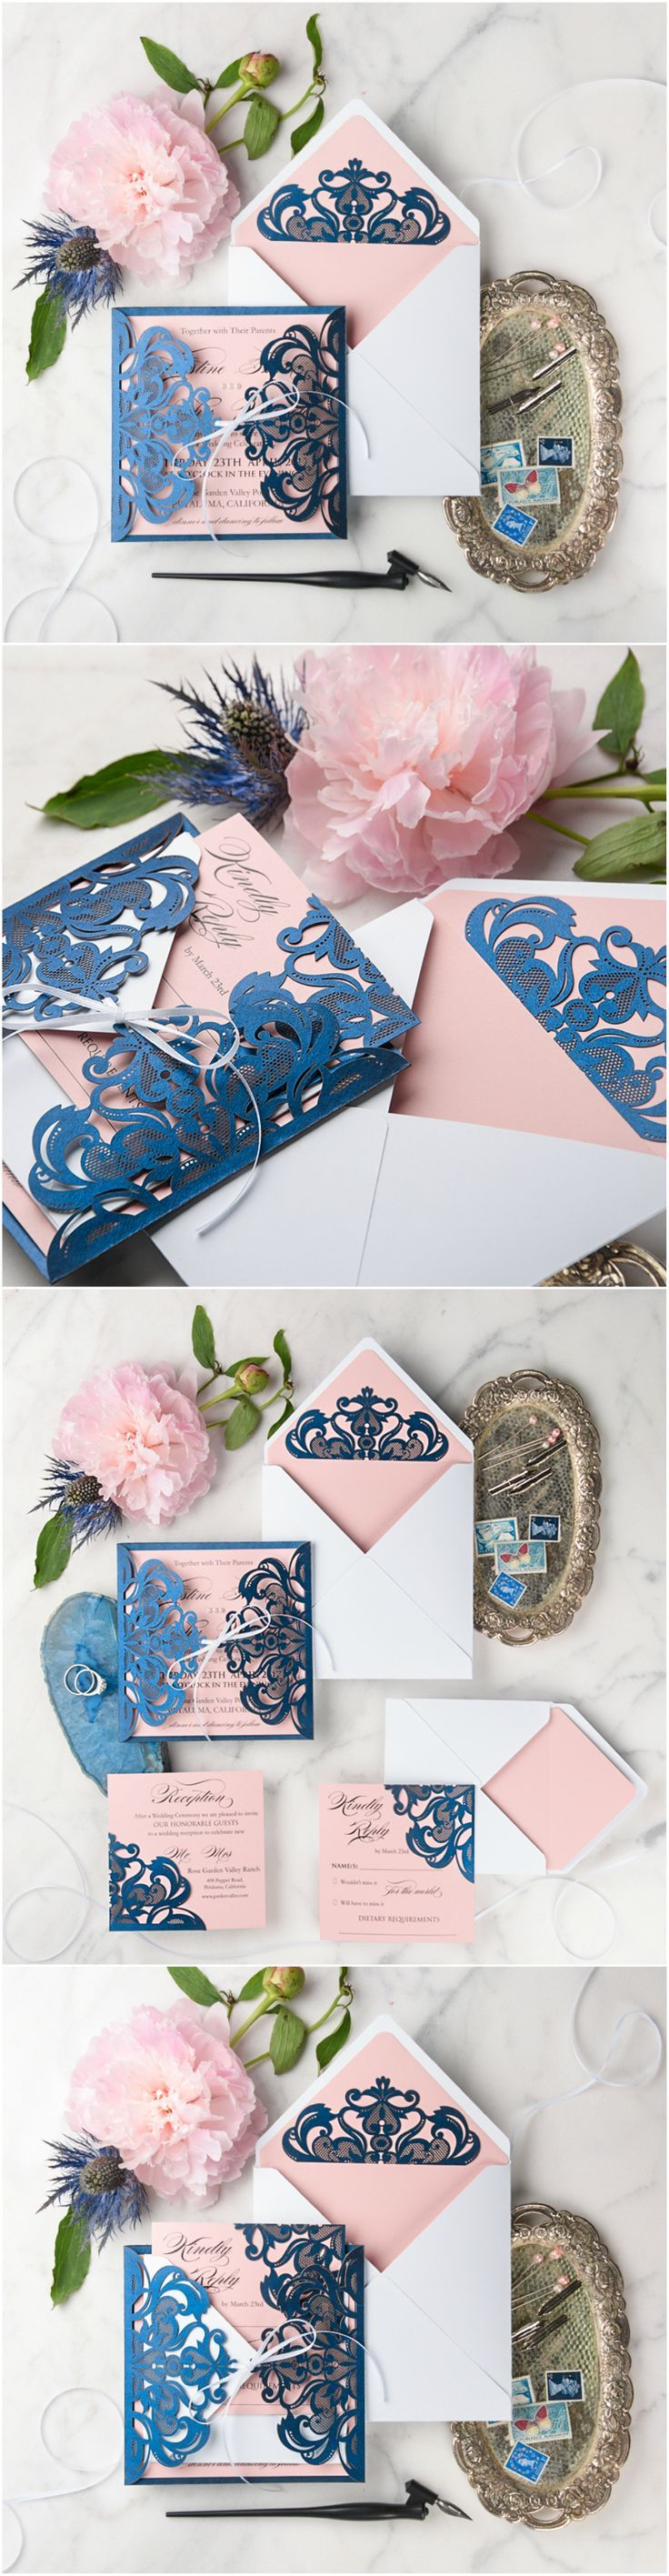 Navy, Pink & White Laser cut lace Wedding Invitations - elegant and romantic #lace #romantic #elegant #weddingstationery #weddinginvites #weddingideas